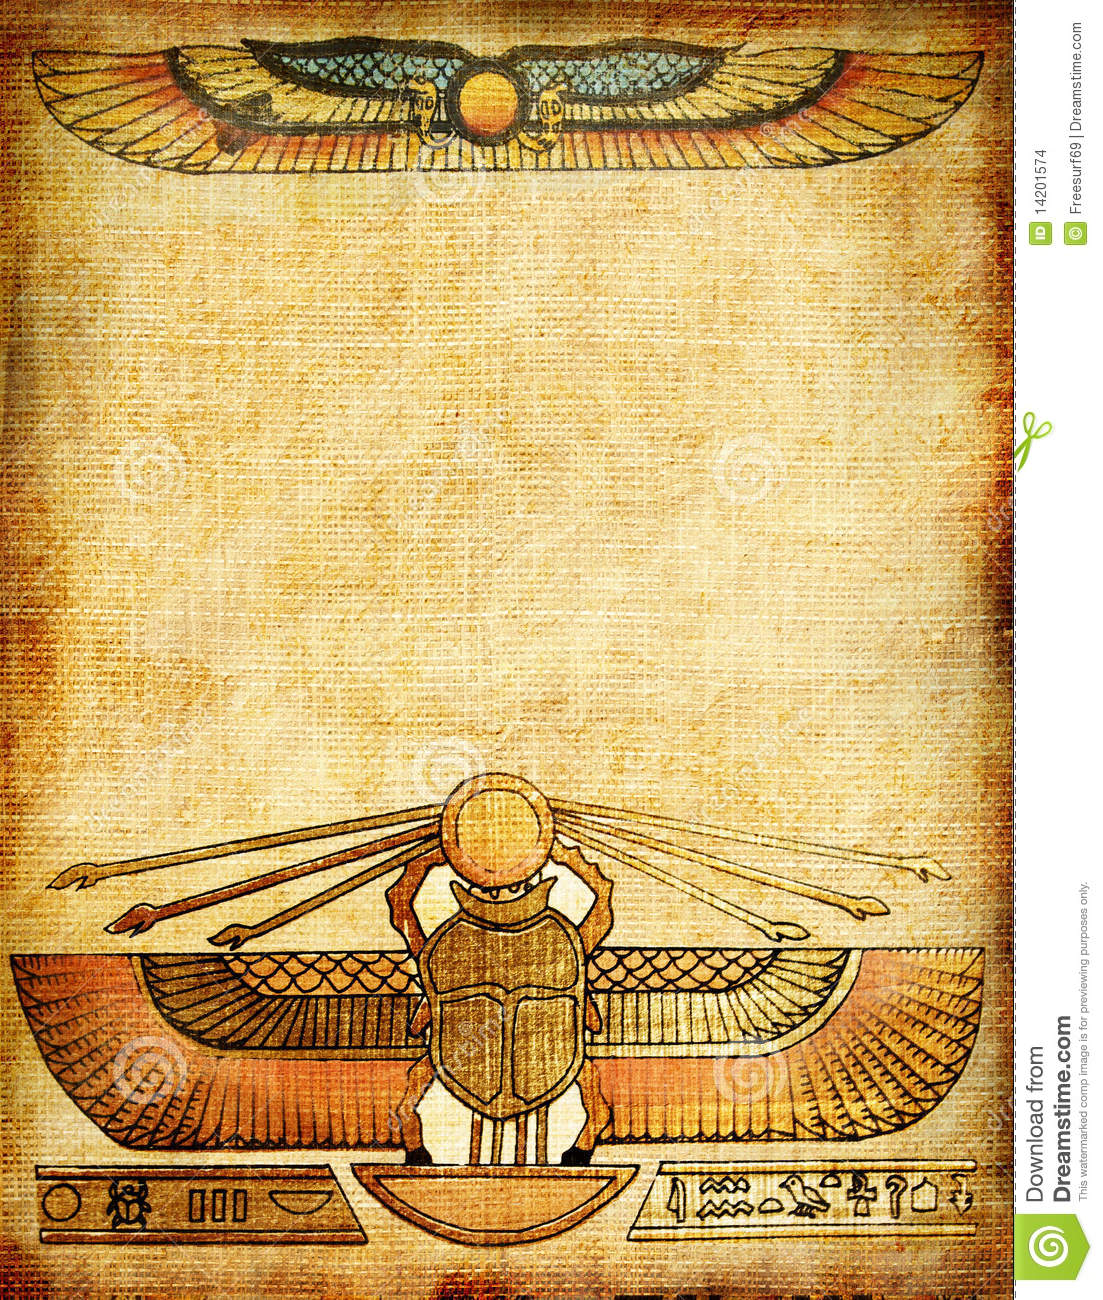 More similar stock images of ` Egyptian background `